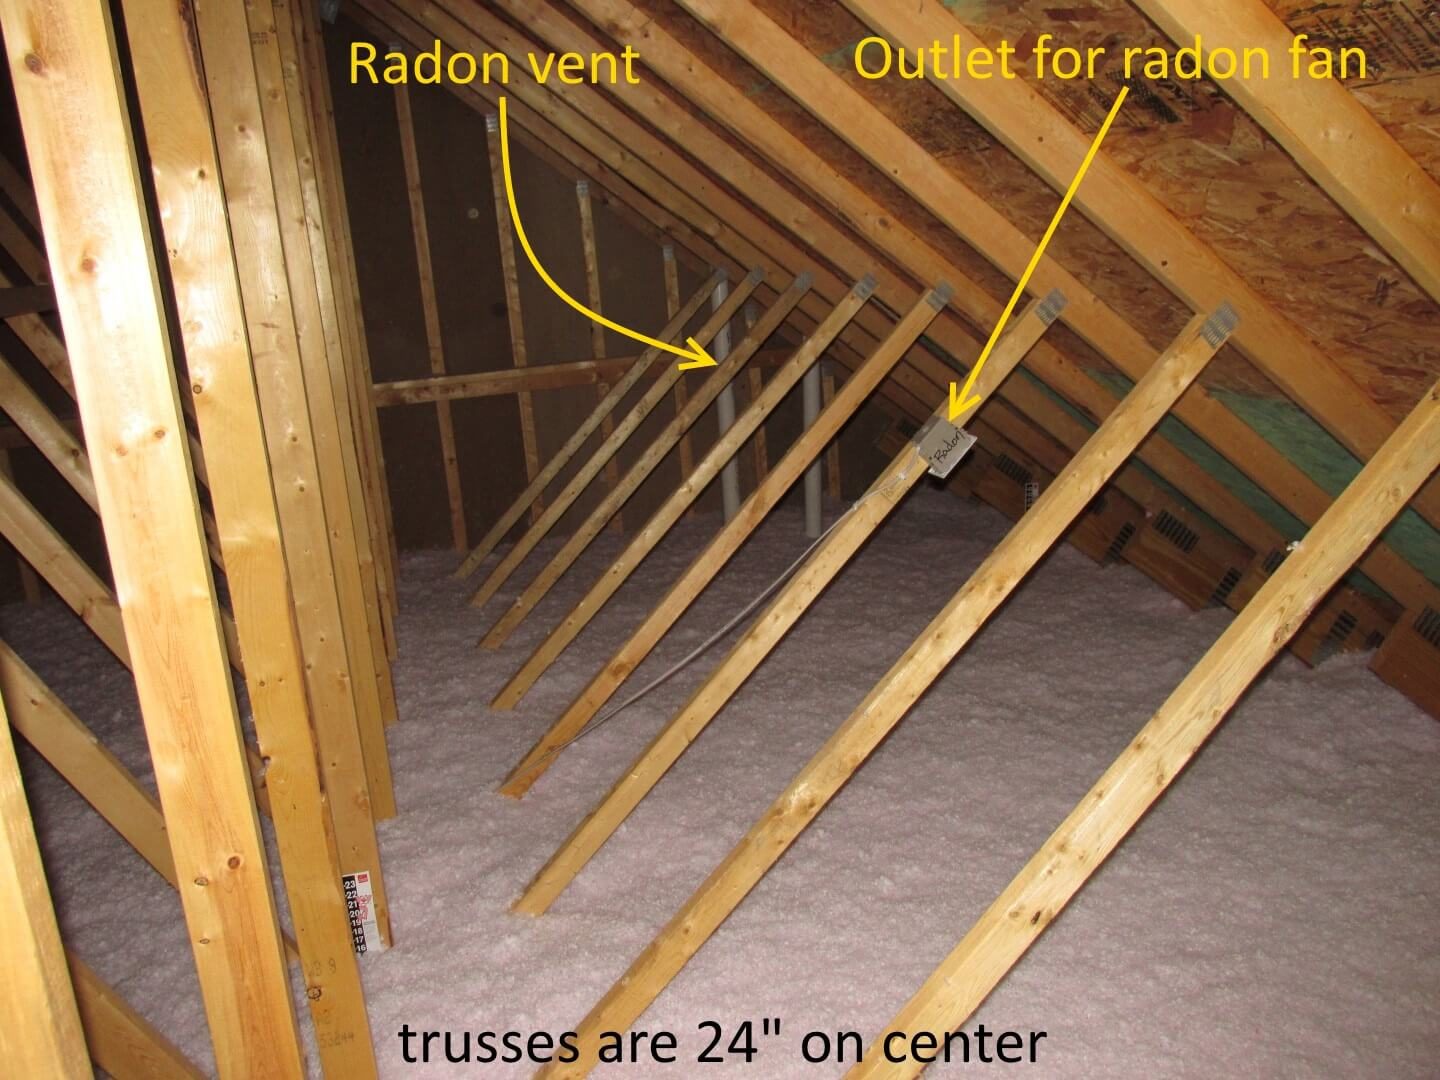 Minnesota Home Builder Wont Allow Attic Inspections My Two Cents House Fuse Box Wiring An Heres A Where The Agreed To Install Radon Fan But Installed On Its Side Fans Should Be Vertically Help Prevent